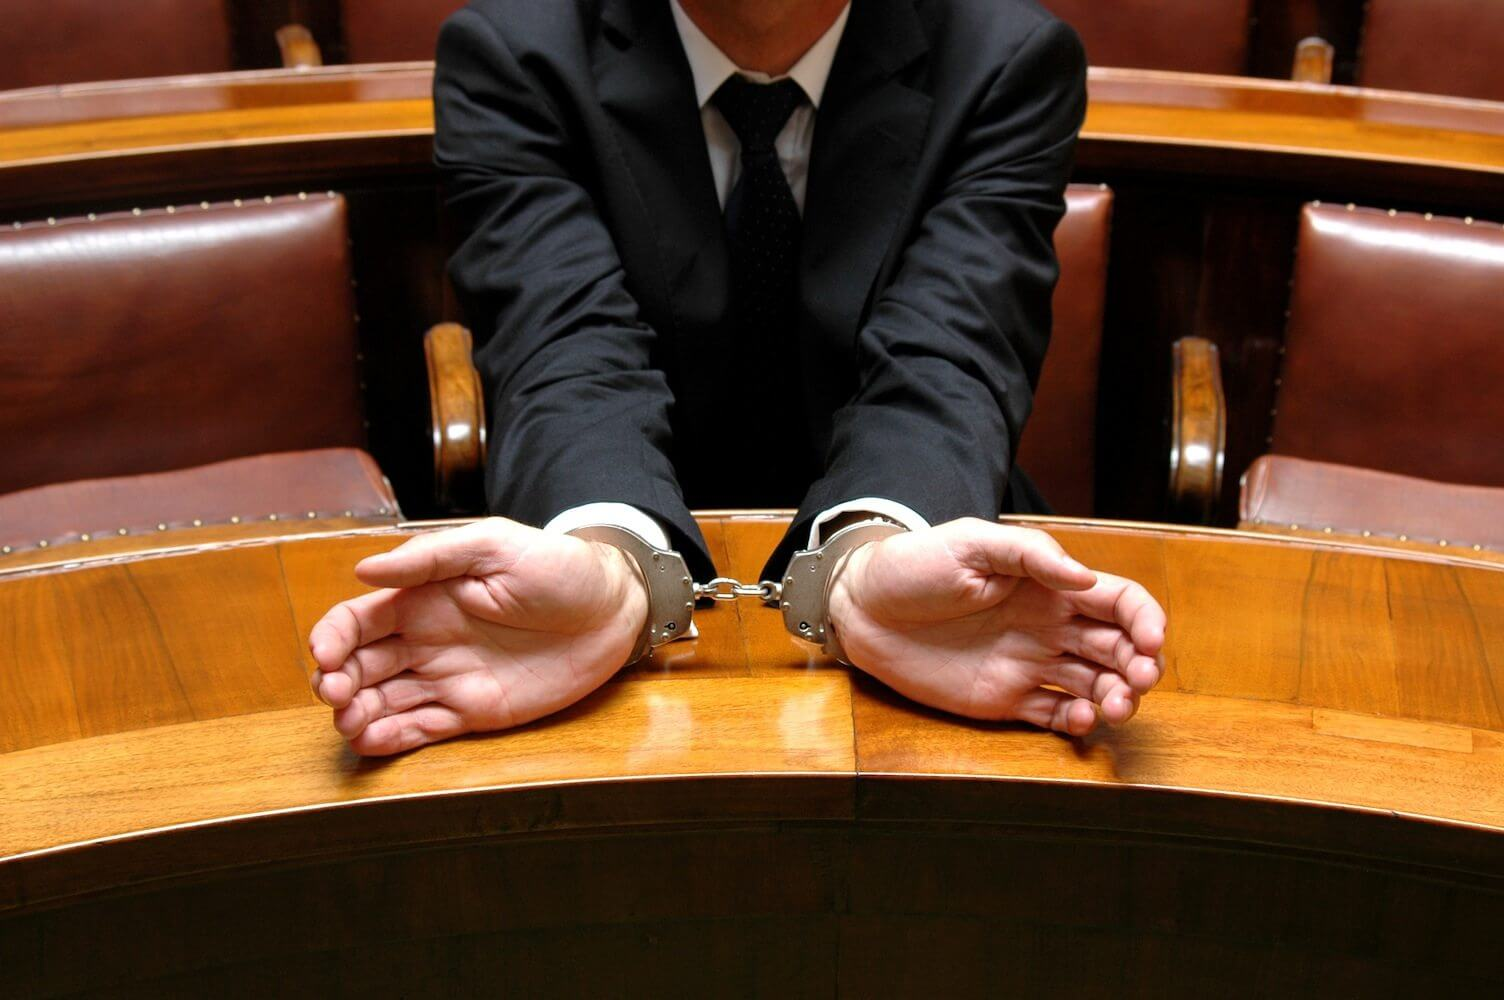 How to find the right criminal defense lawyer?